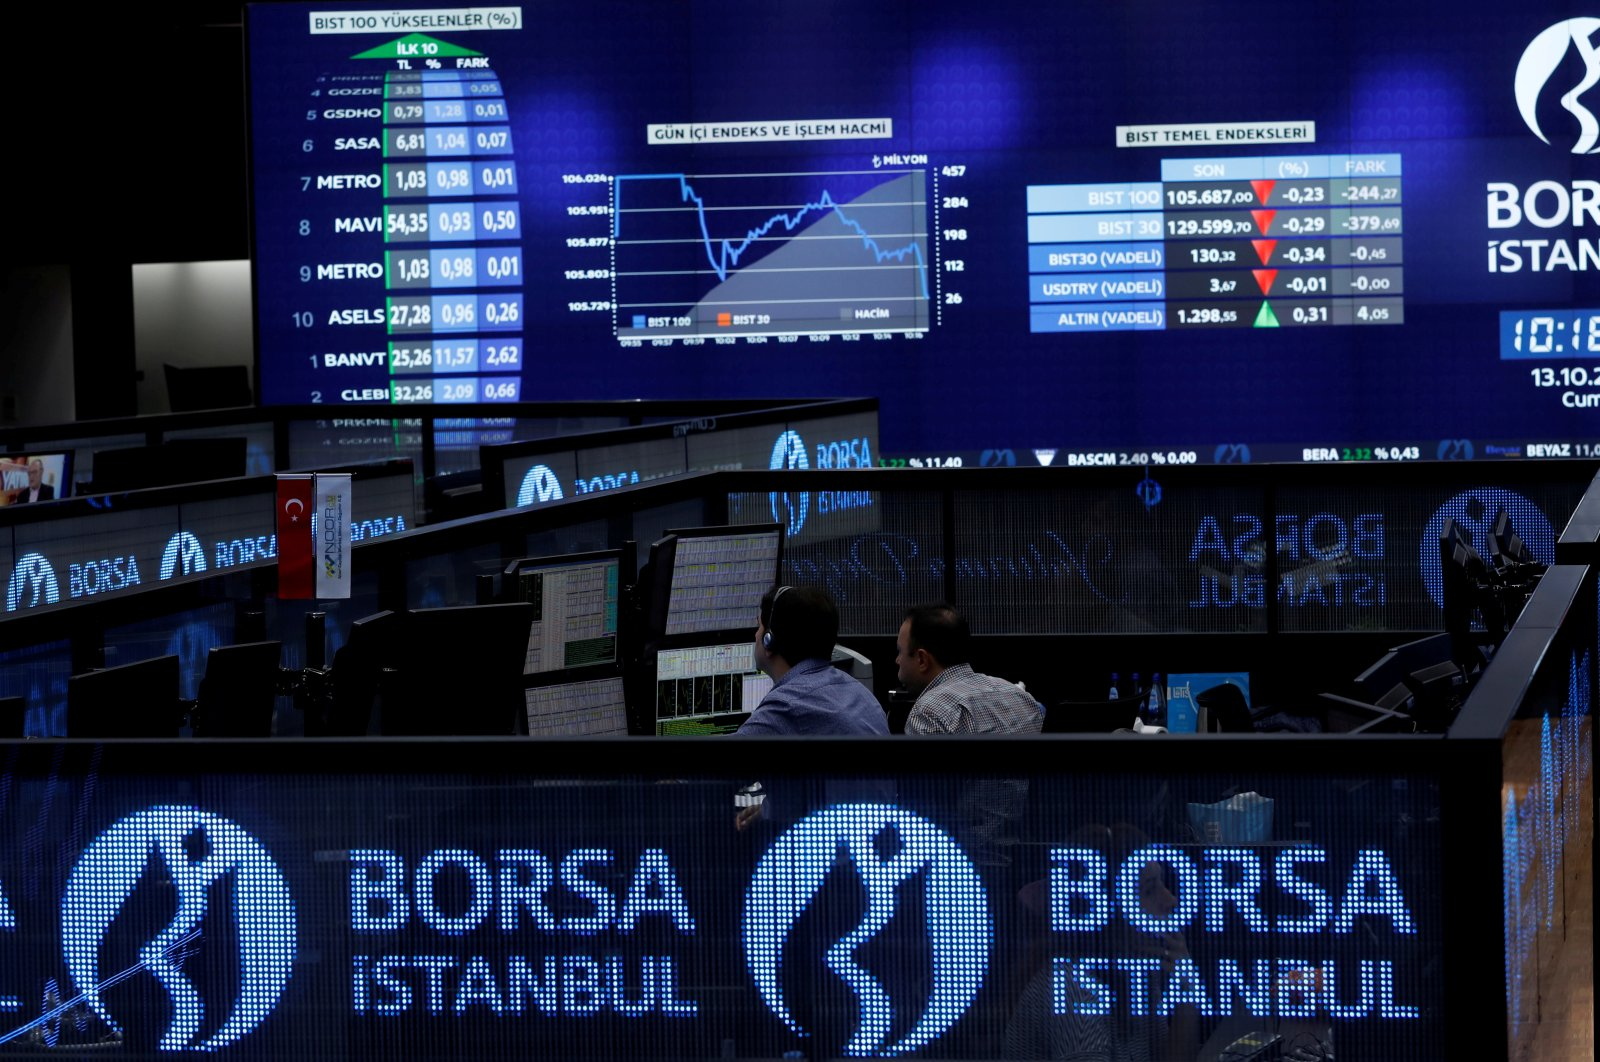 Traders work at their desks on the floor of the Borsa Istanbul Stock Exchange (BIST) in Istanbul, Turkey, Oct. 13, 2017. (Reuters Photo)